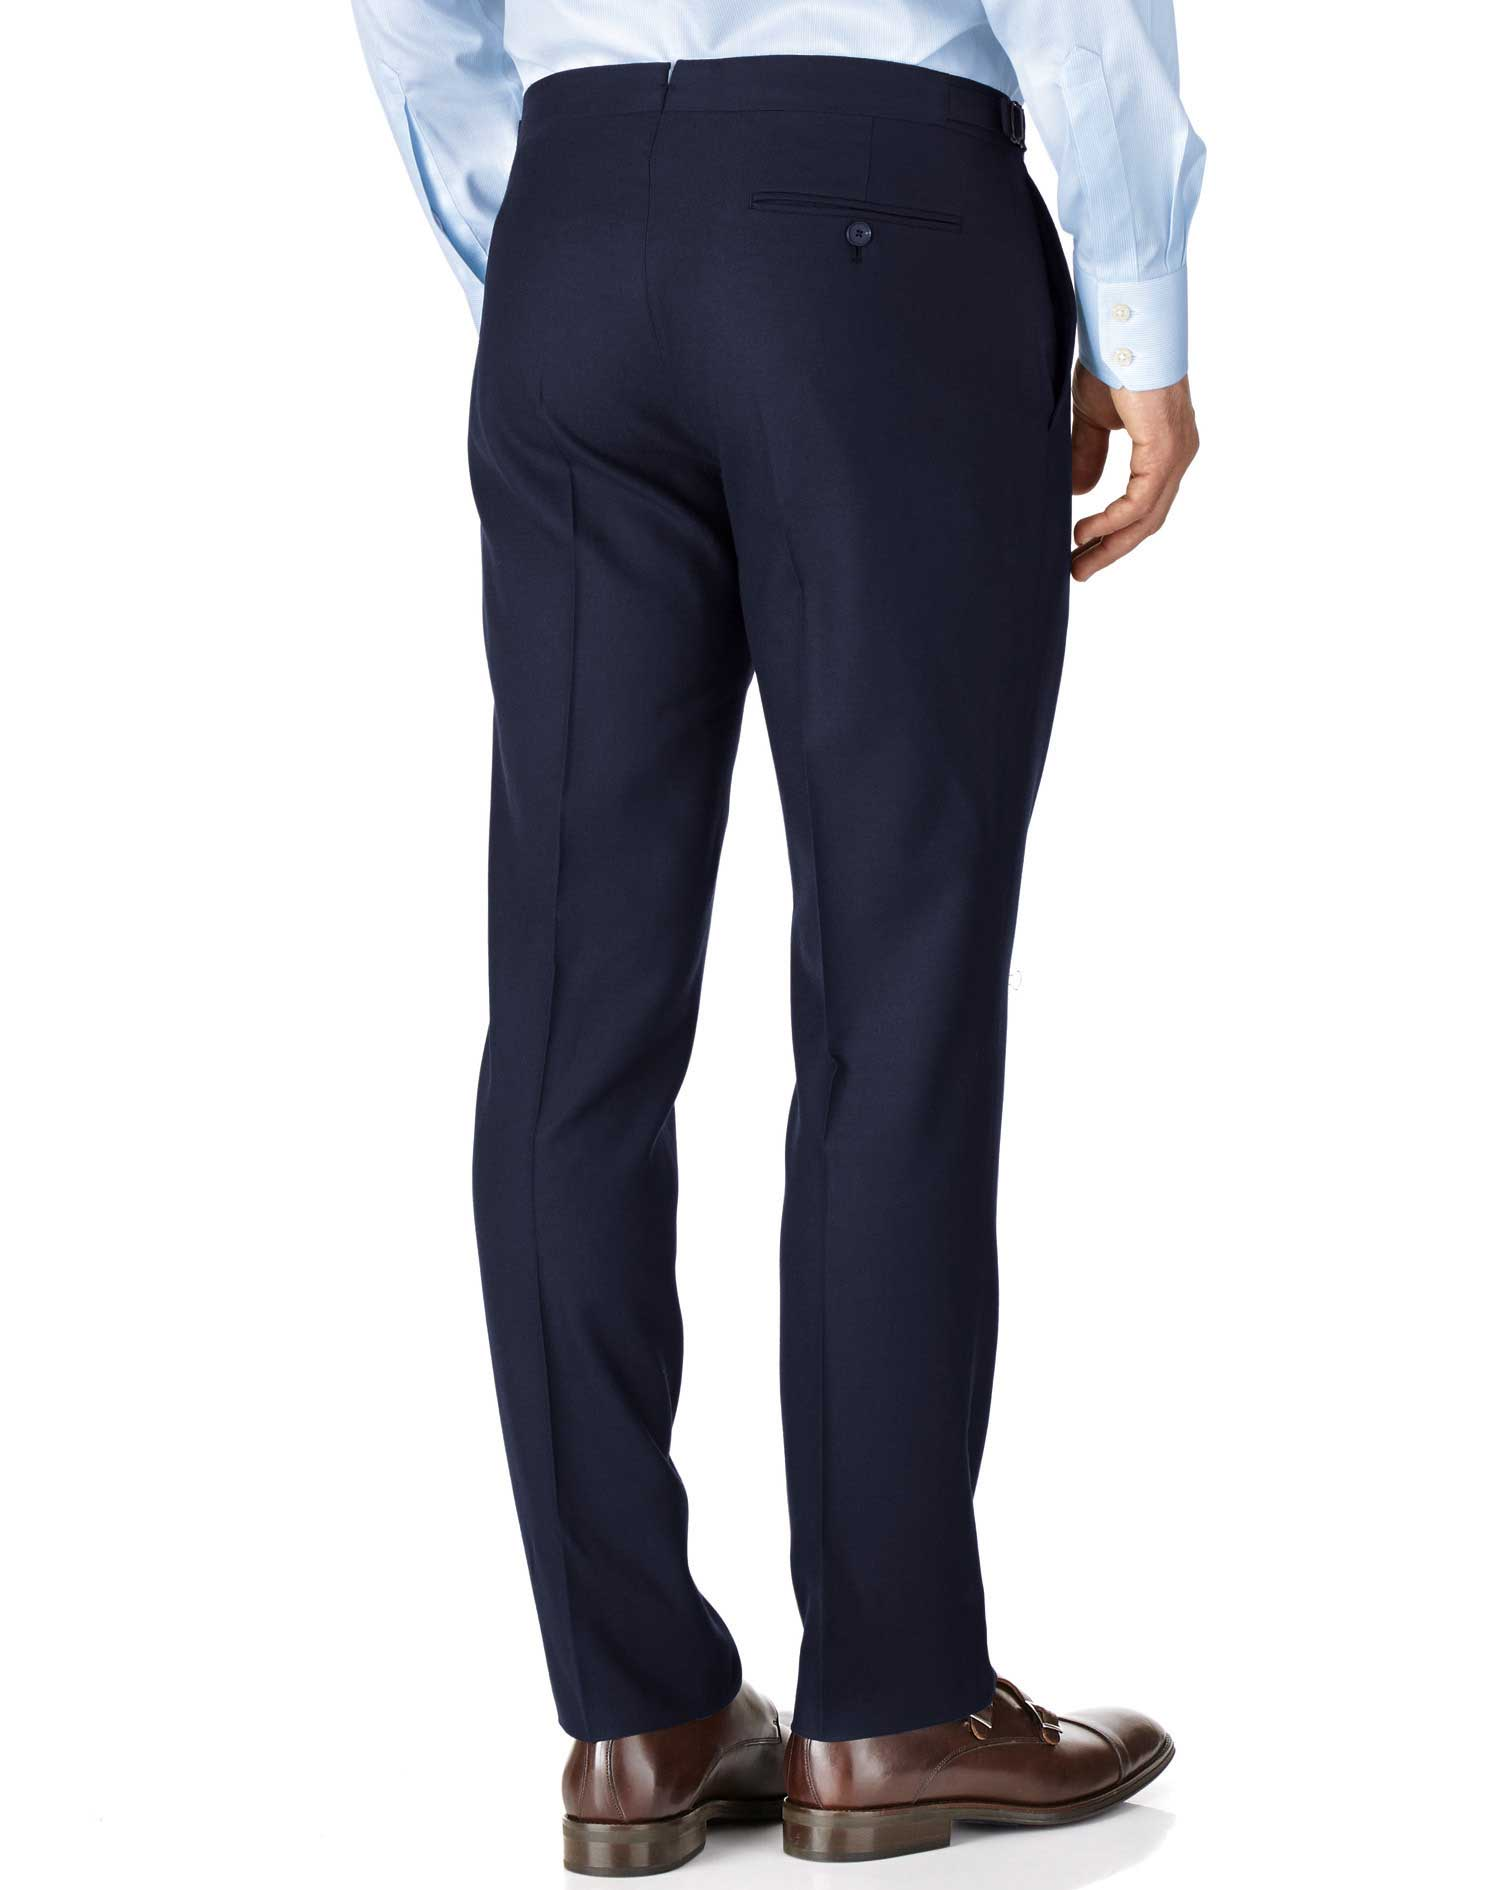 Navy slim fit British serge luxury suit trousers